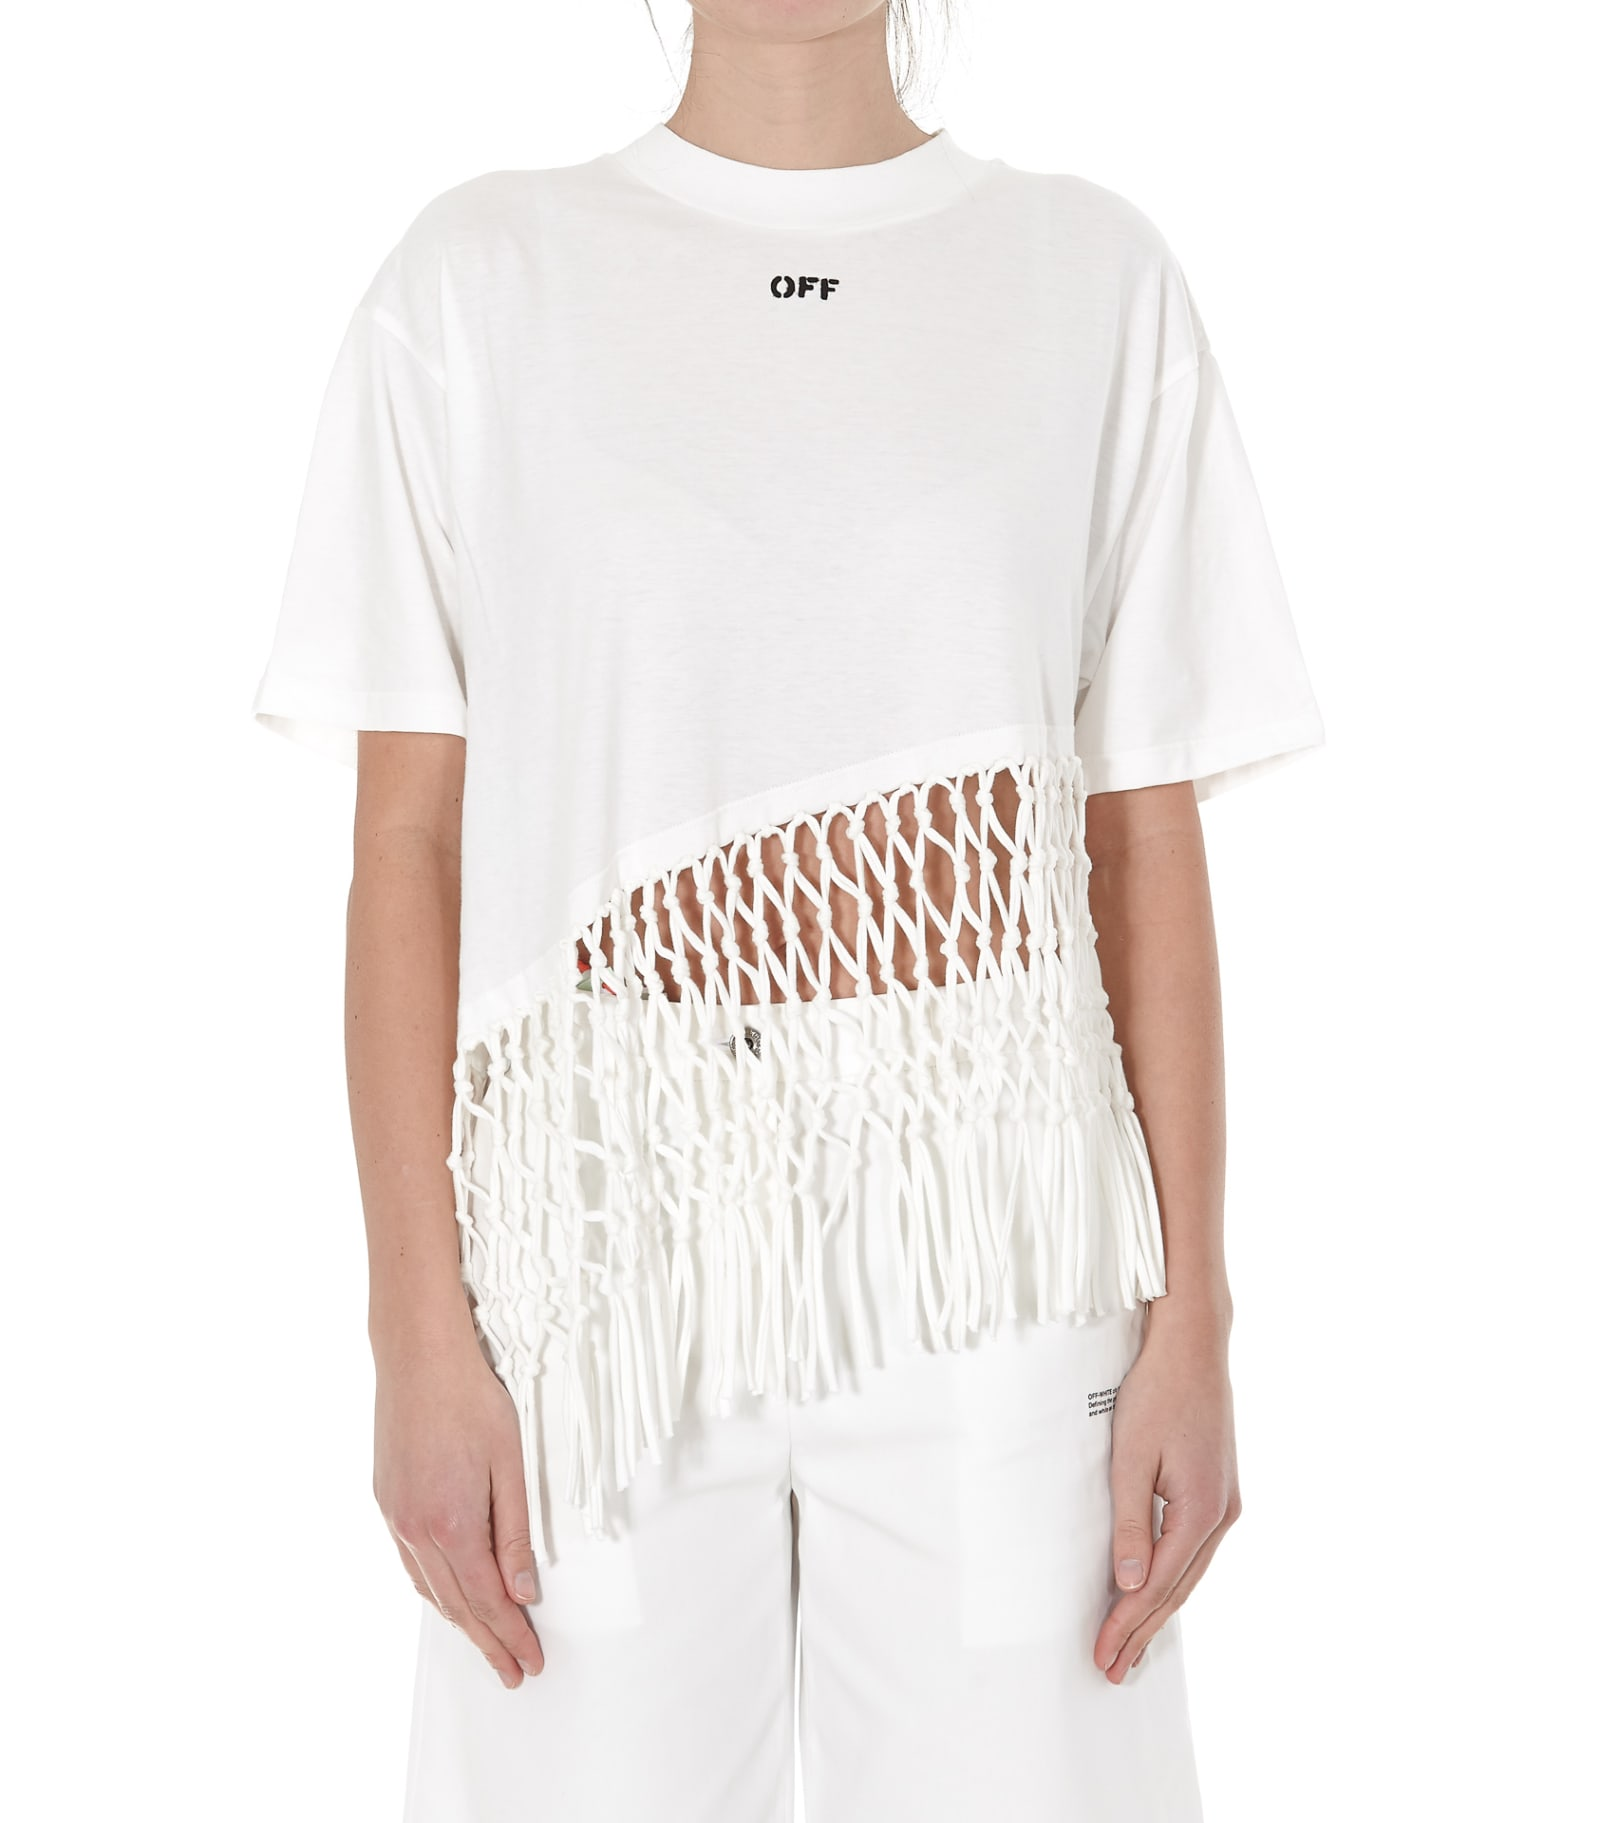 Off-white Asymmetrical T-shirt